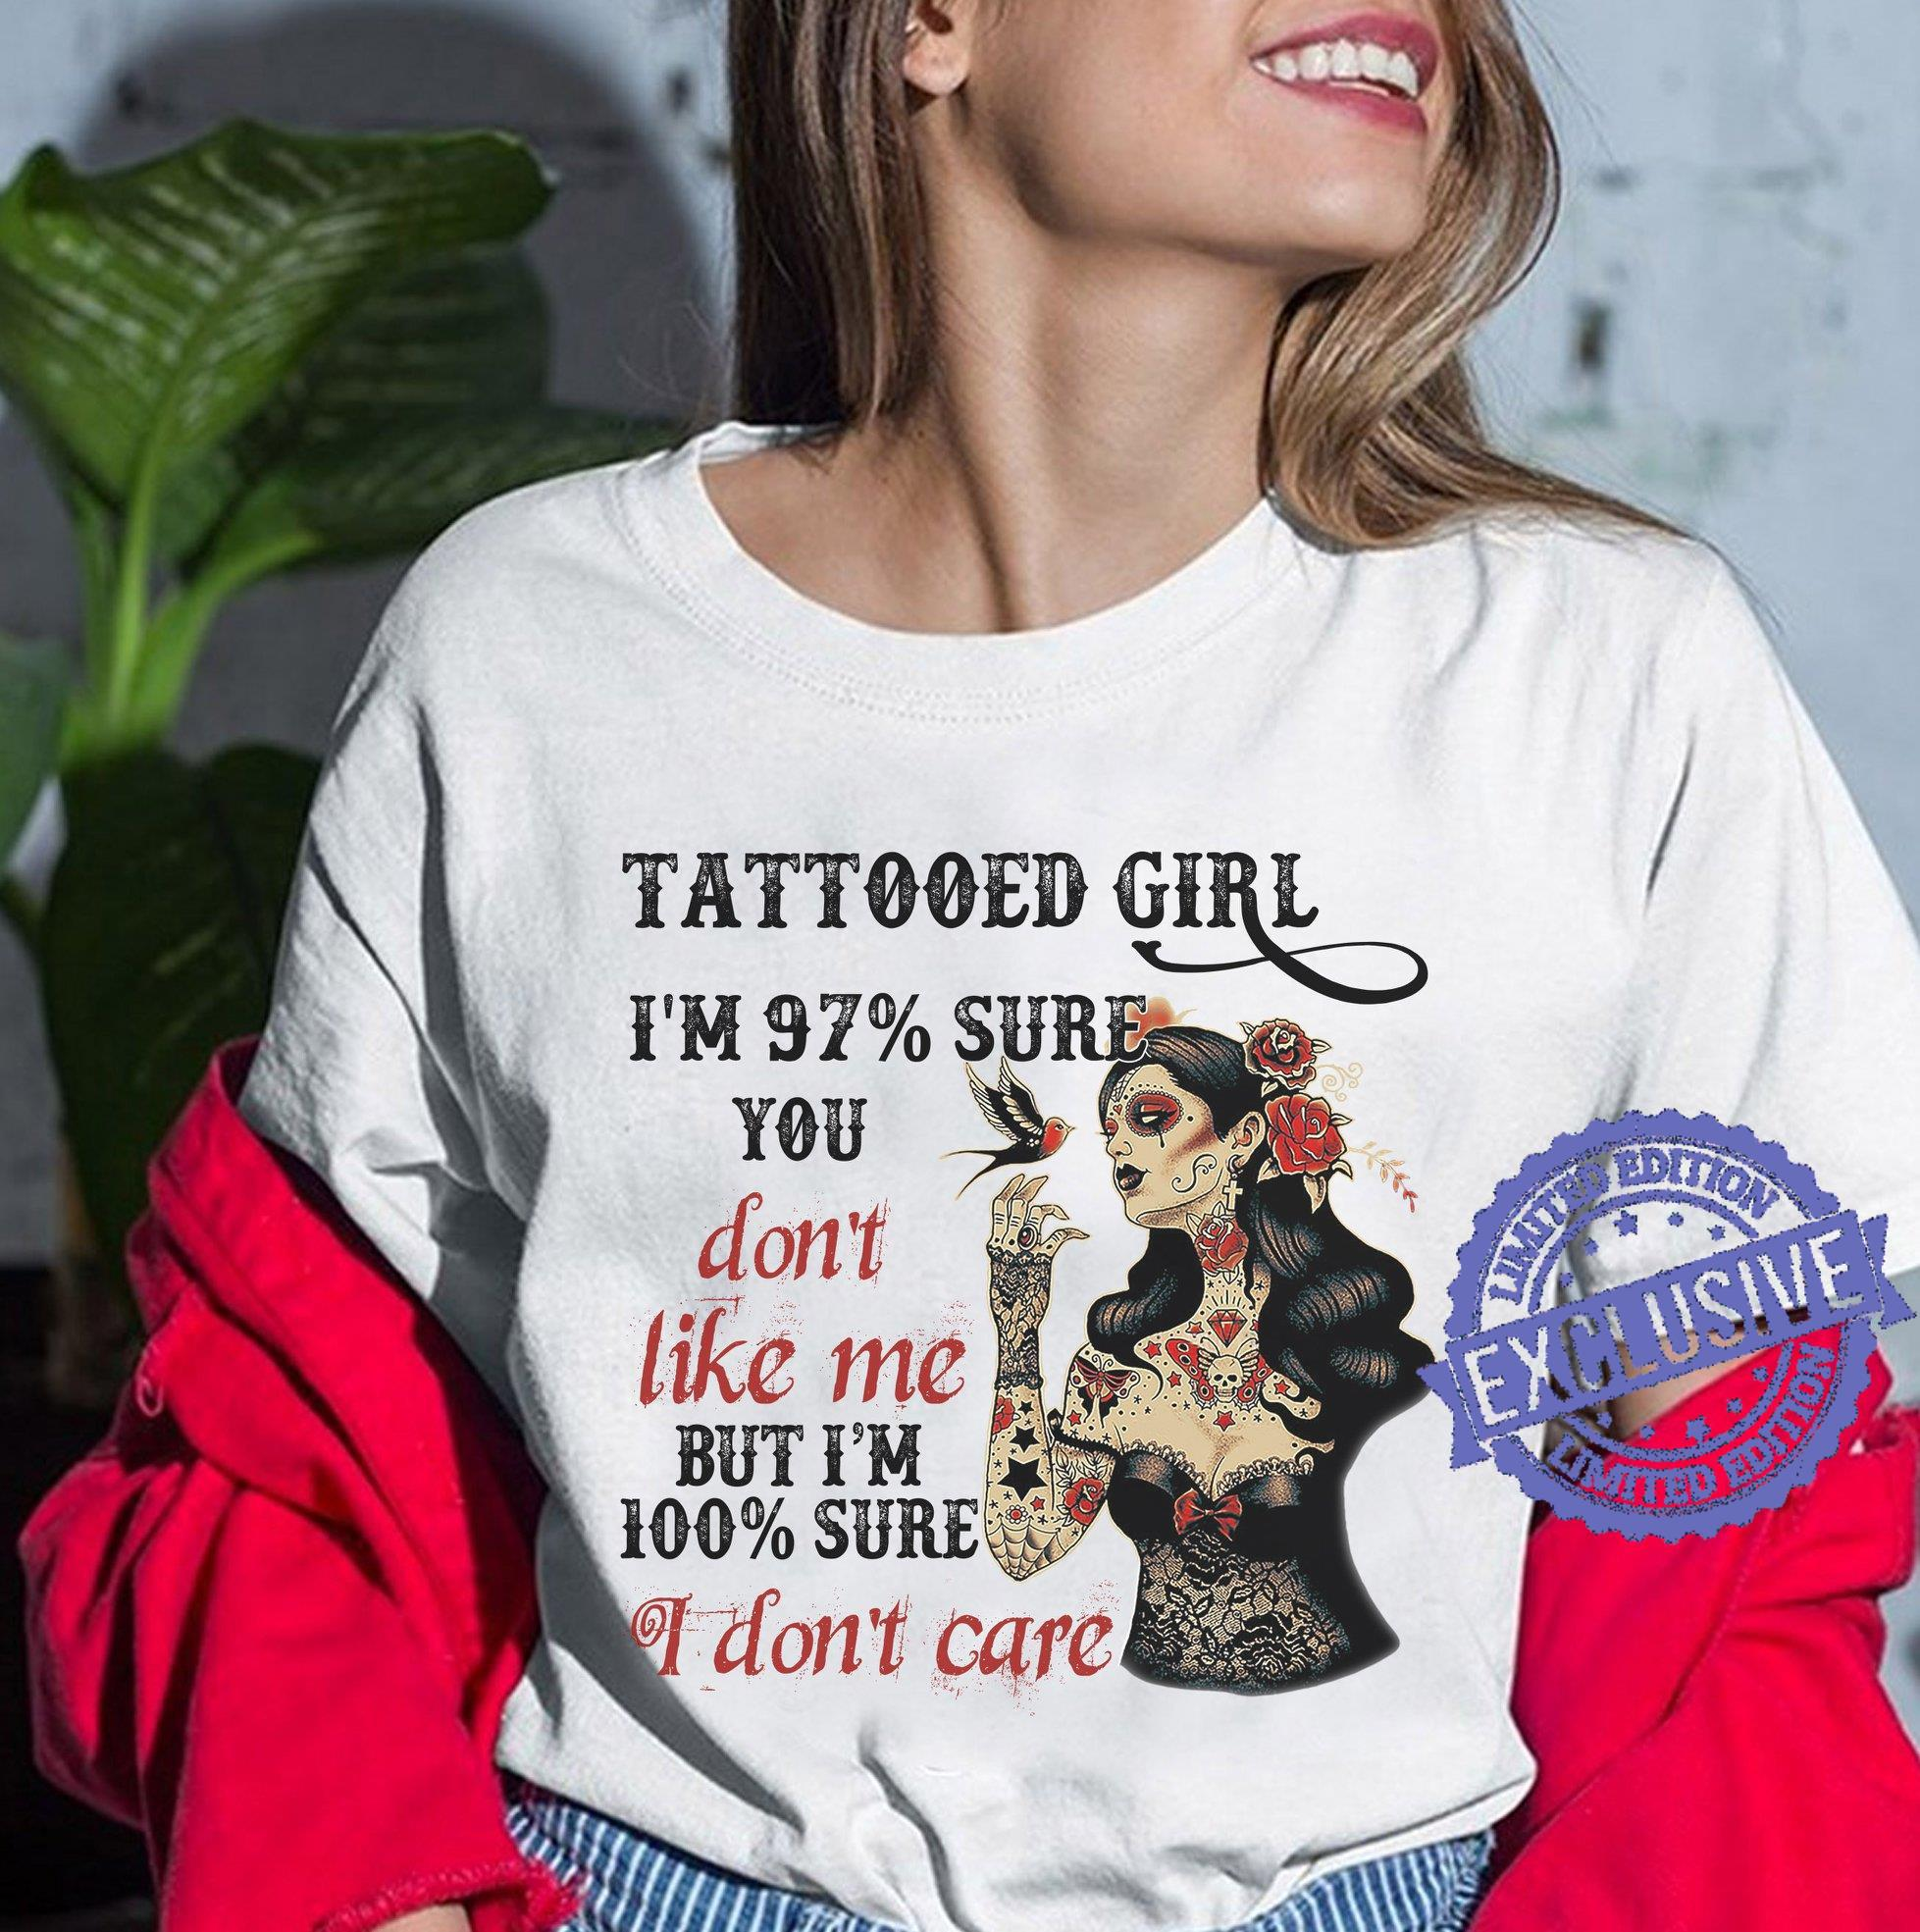 Tattooed girl i'm 97 sure you don't like me but i'm 100 sure i don't care shirt